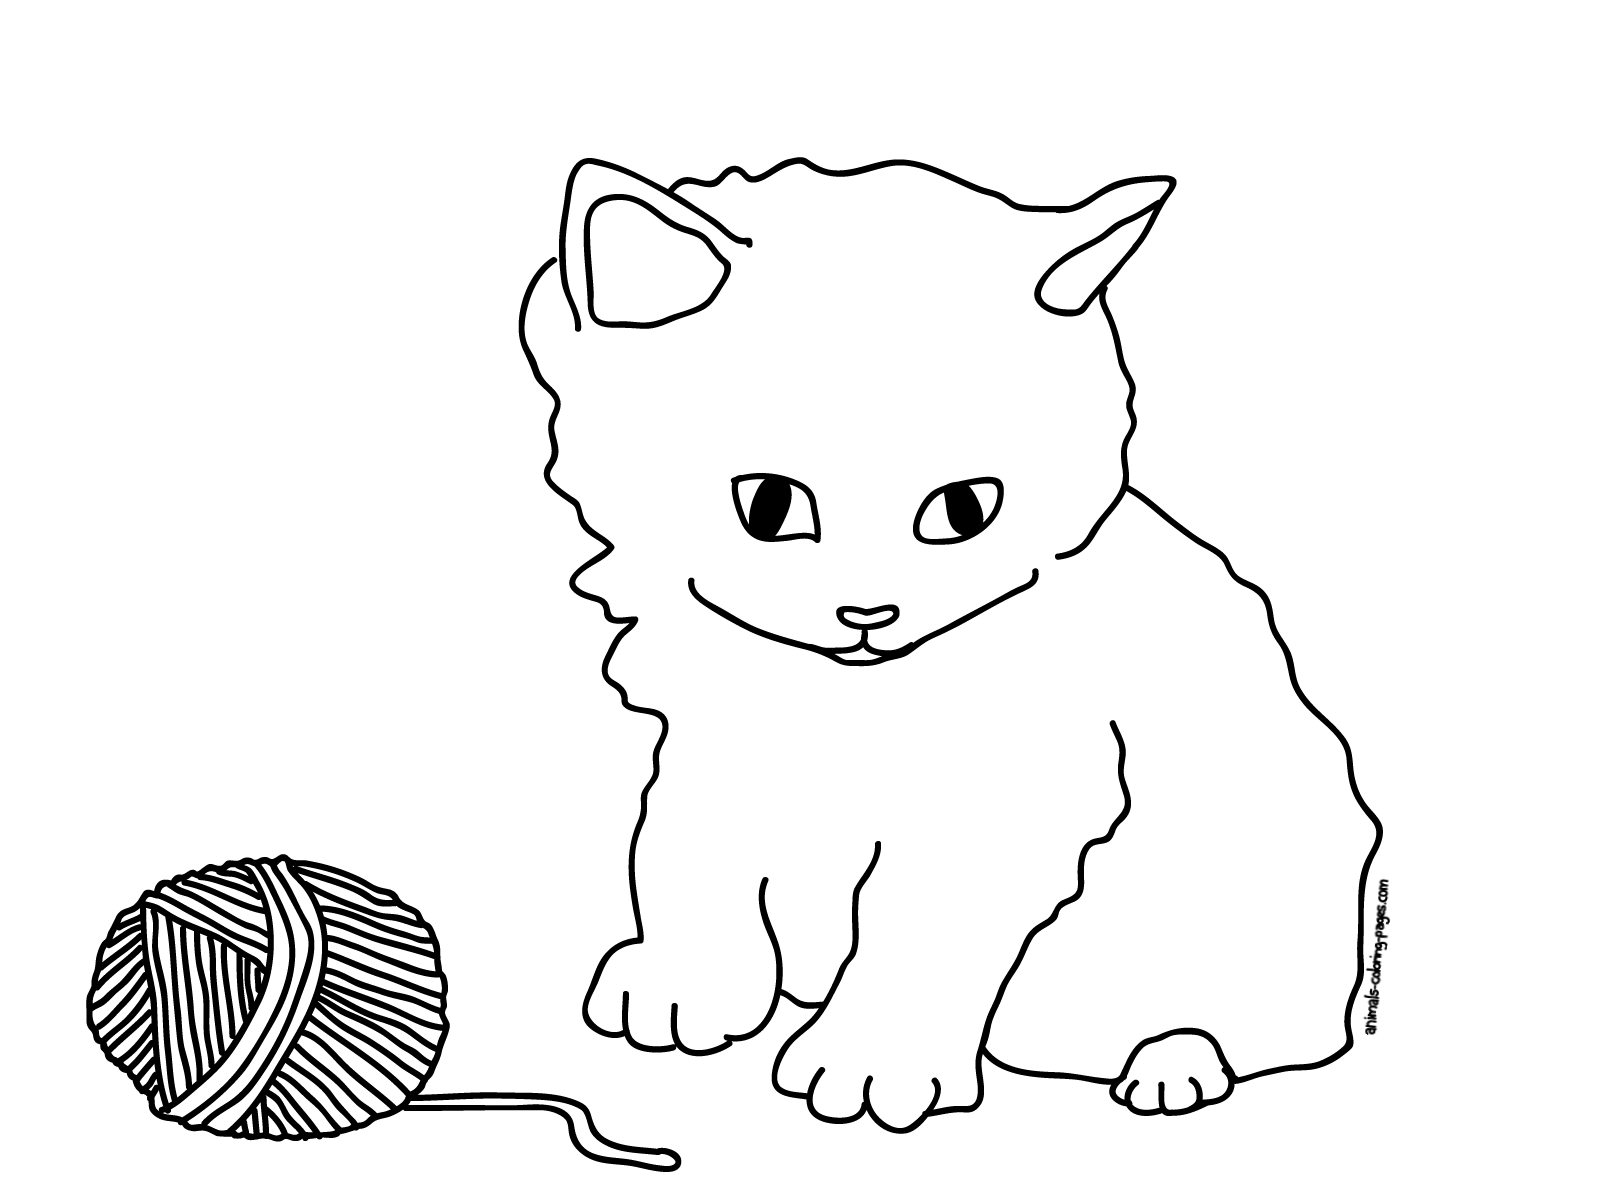 Baby Puppy And Kitten Coloring Pages - Coloring Home